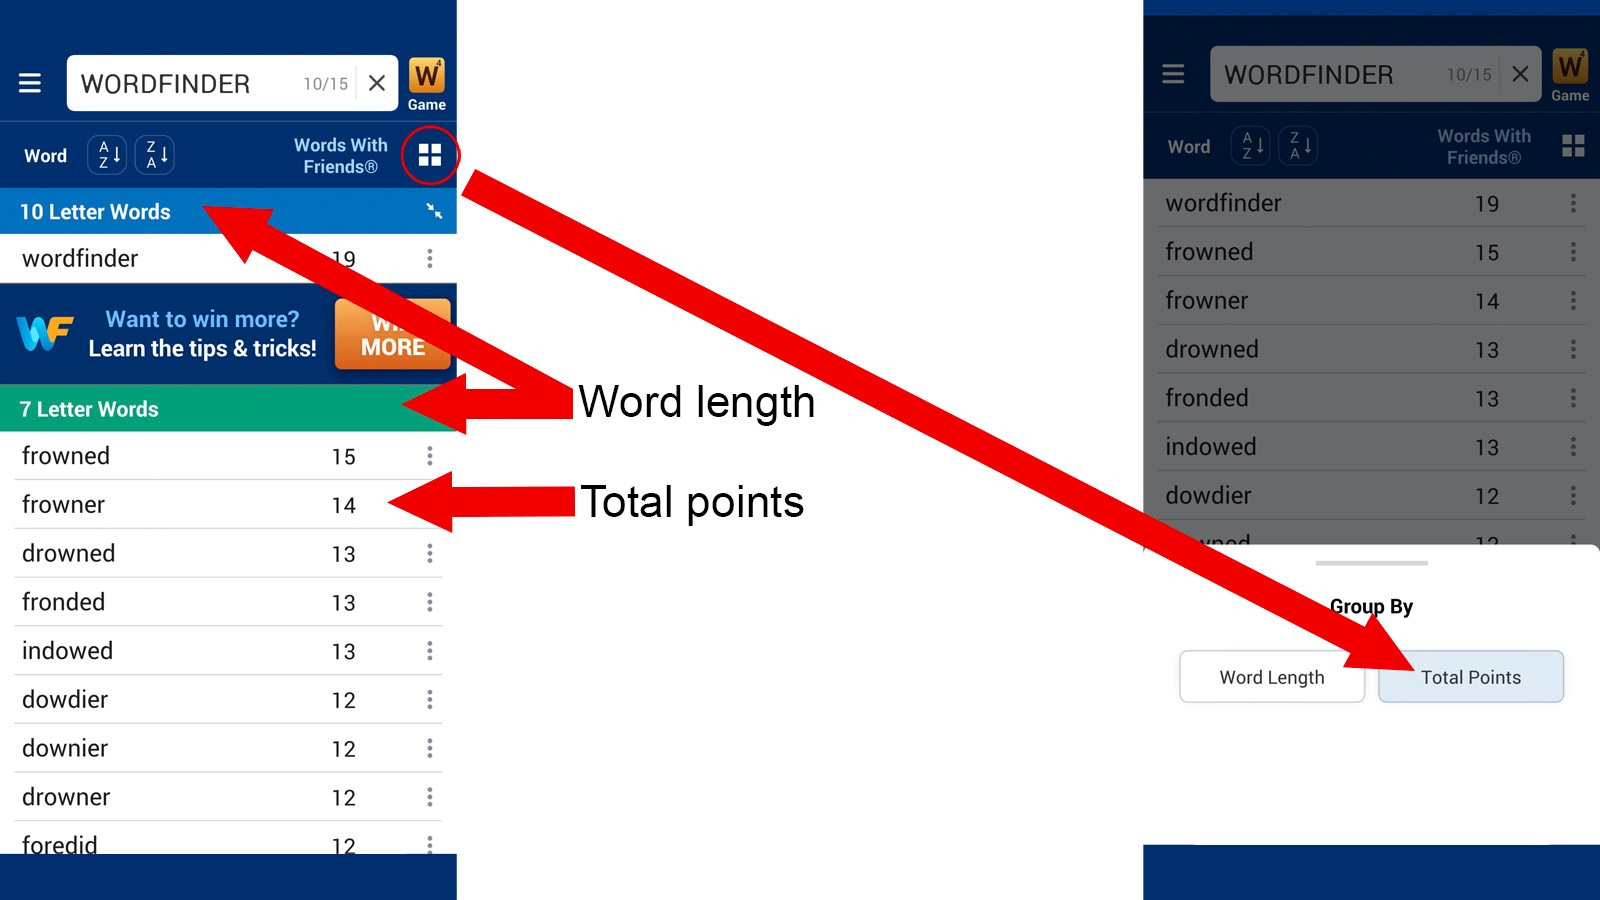 Wordfinder App sort Total Points instructions